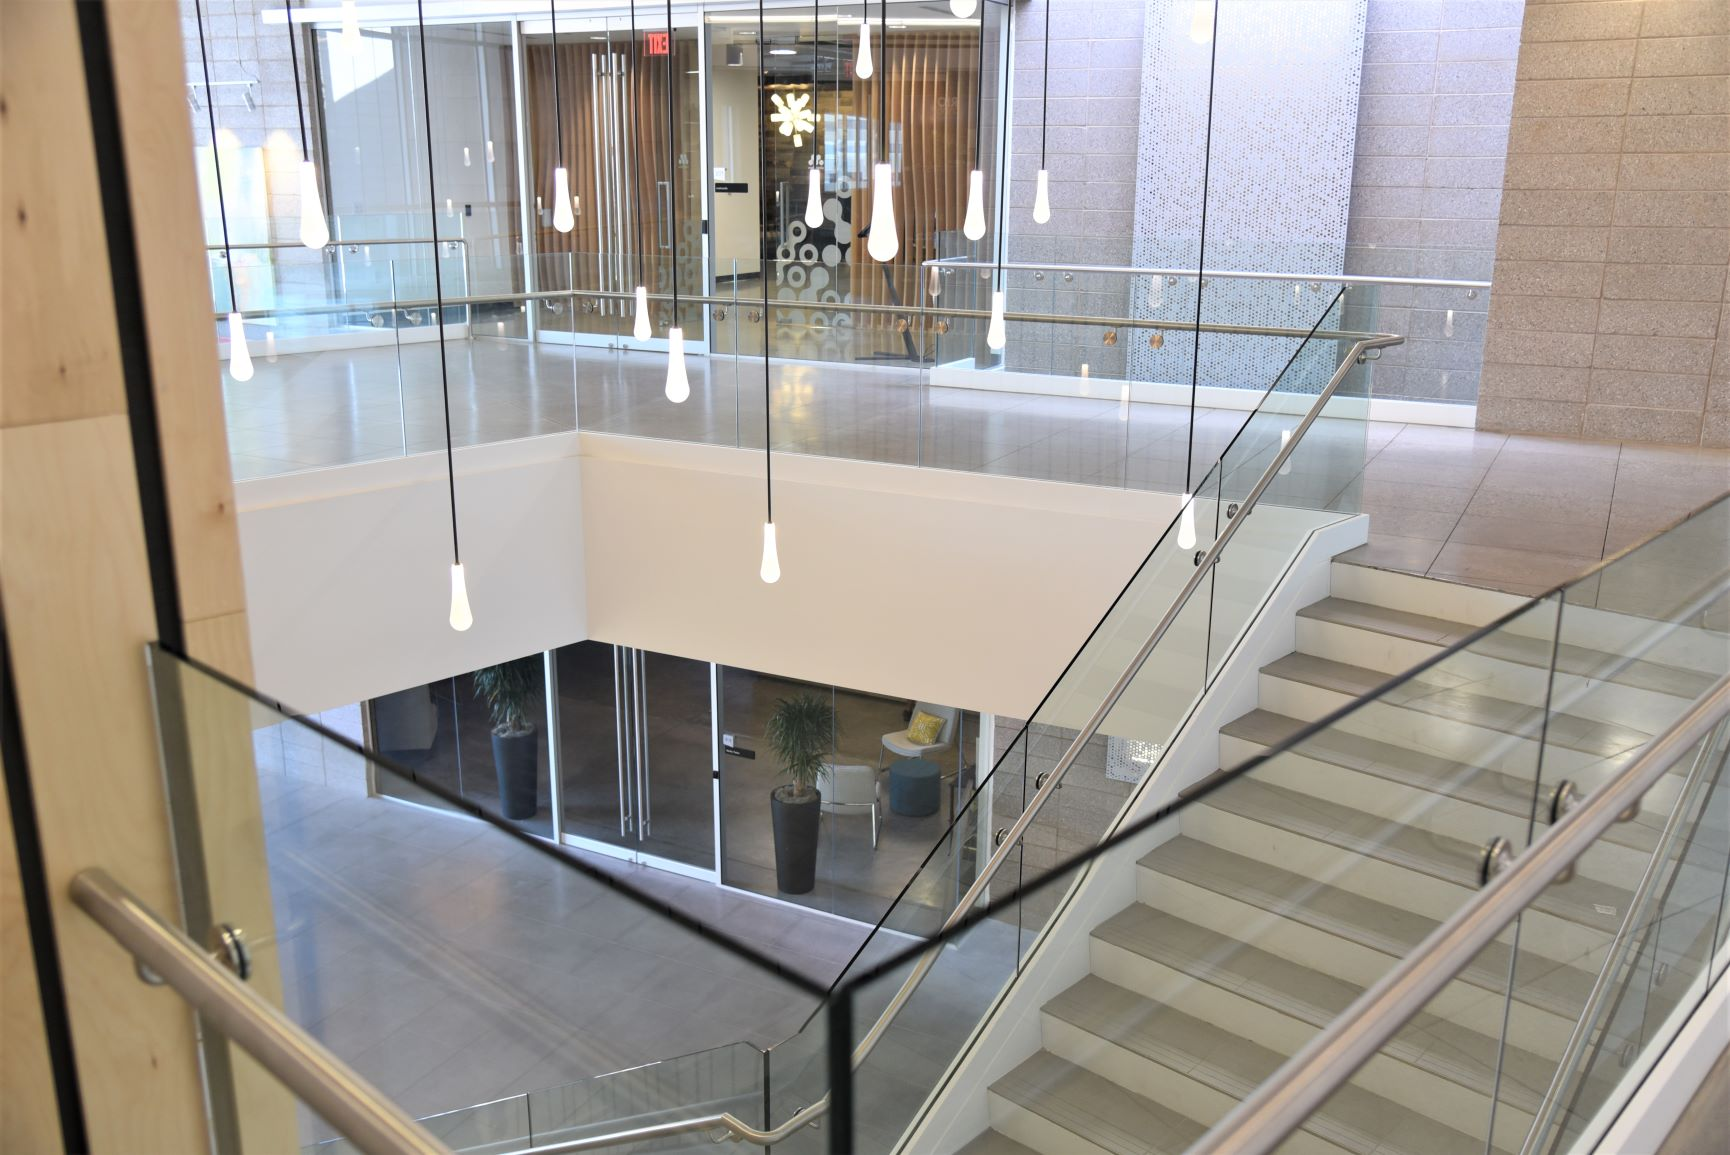 Scope: Stainless steel glass railings with painted steel base cladding.